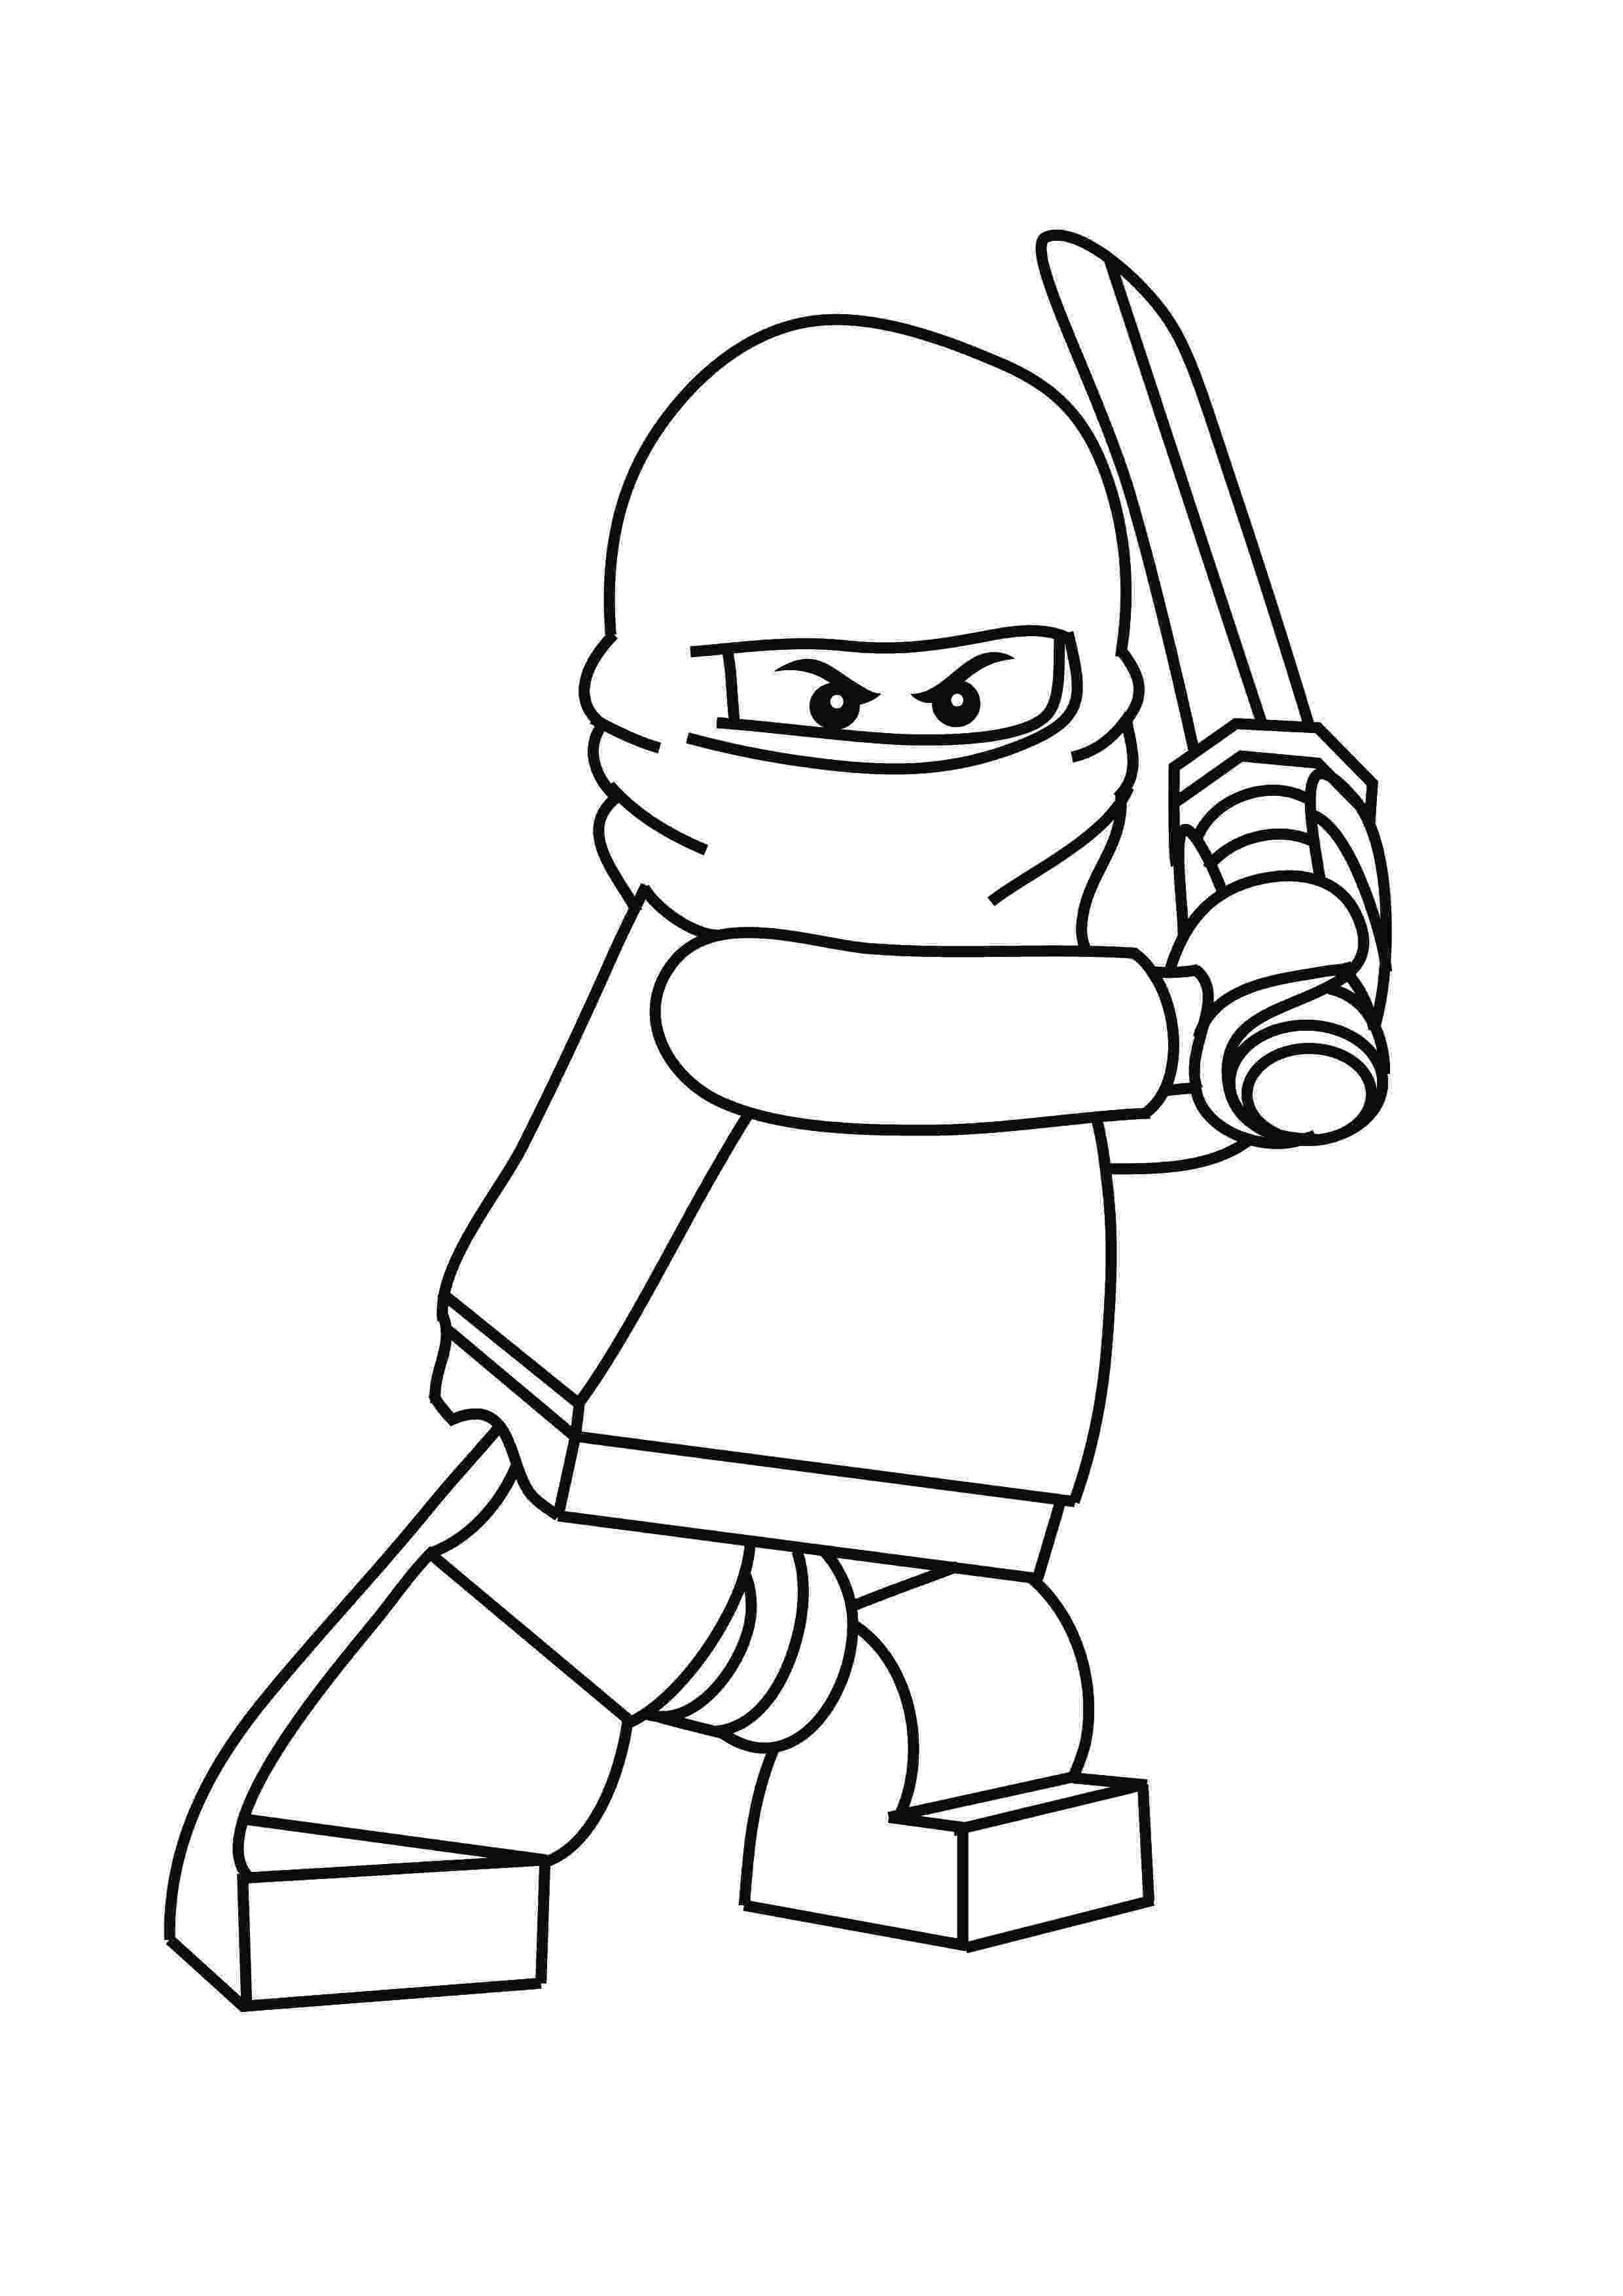 coloring pages of legos lego ninjago coloring pages best coloring pages for kids coloring of legos pages